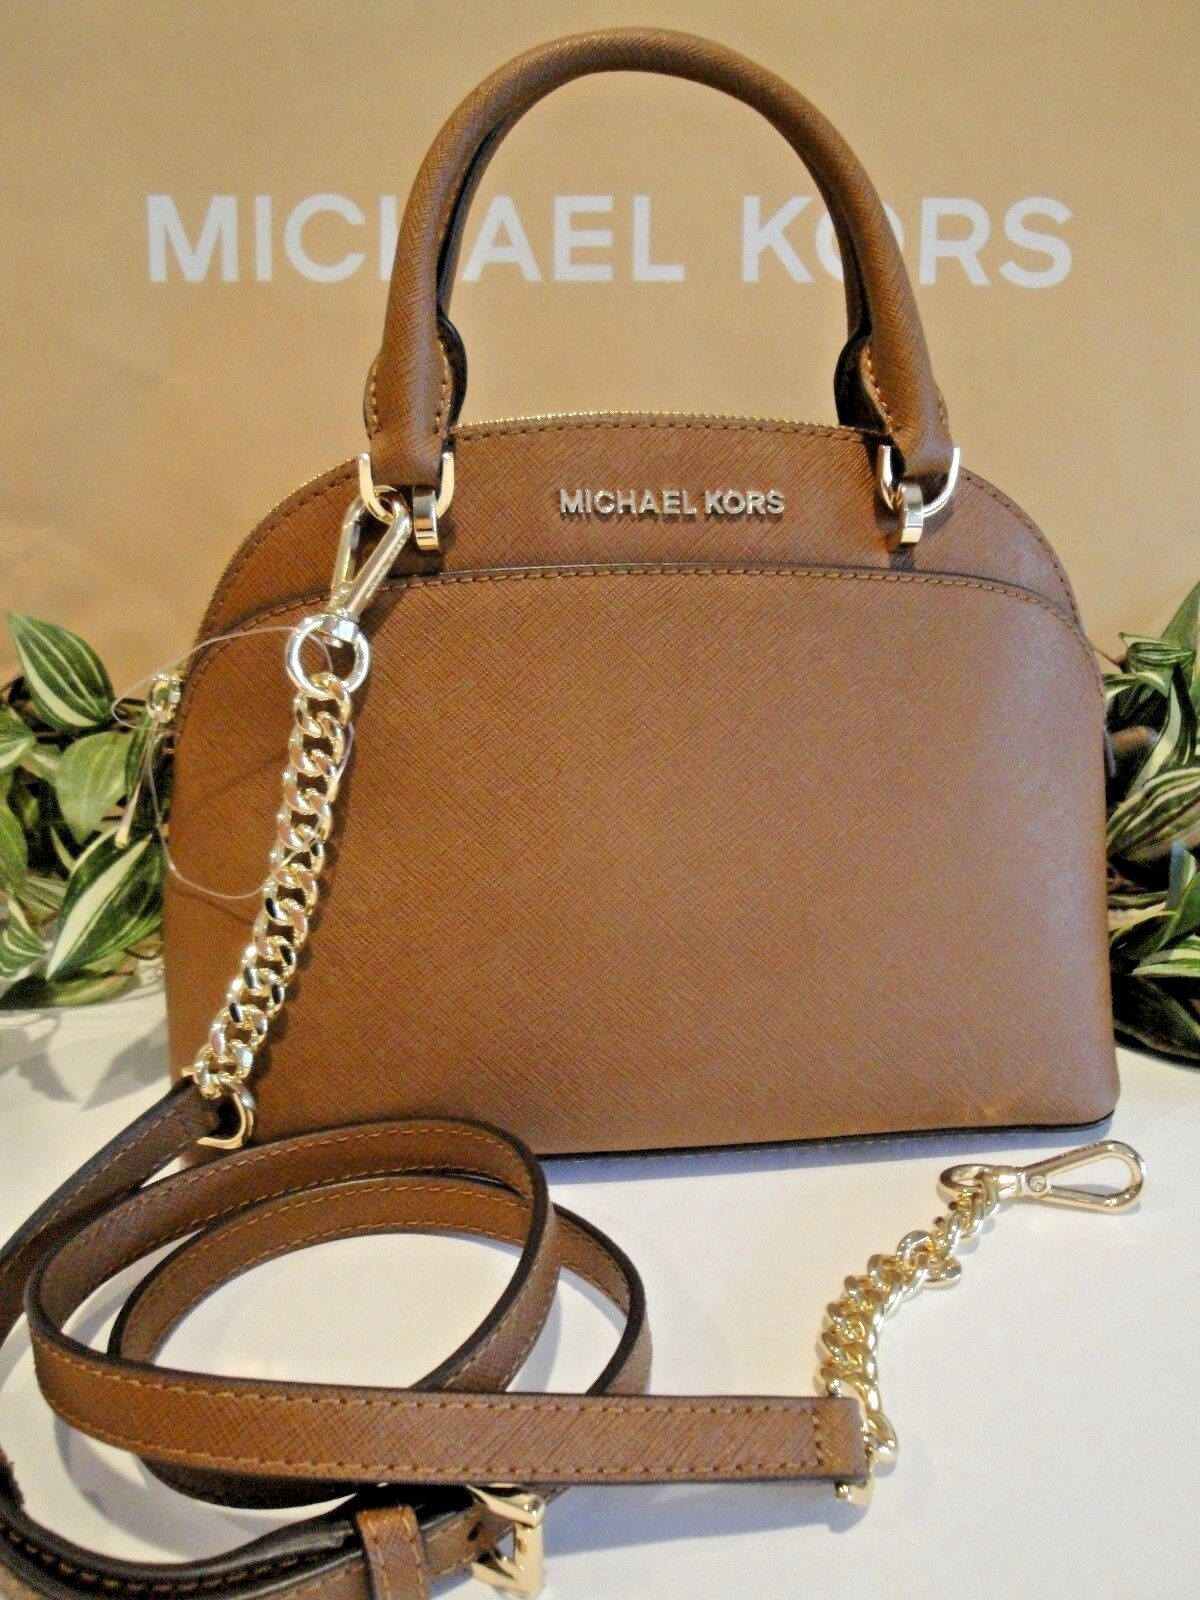 7d67aefbe3 MICHAEL KORS EMMY SMALL DOME SATCHEL CROSSBODY MK BAG LEATHER BROWN LUGGAGE  298